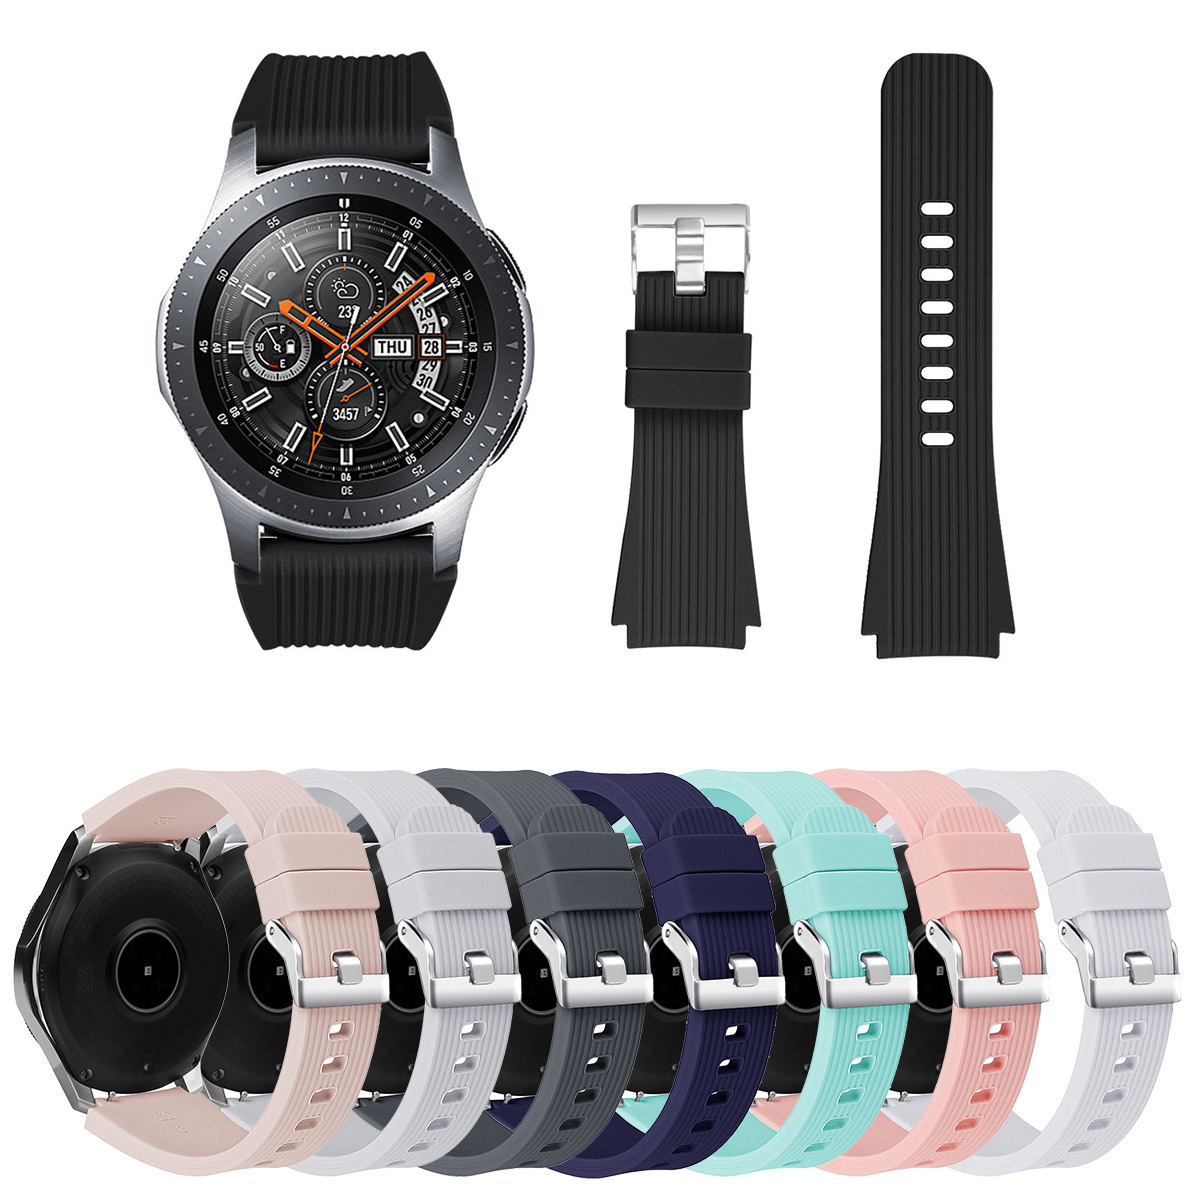 Watchband For Samsung Galaxy Watch 46mm Silicone Wristband Replacement Sport Bracelet Band Smart Watch Accessories 22mm Strap